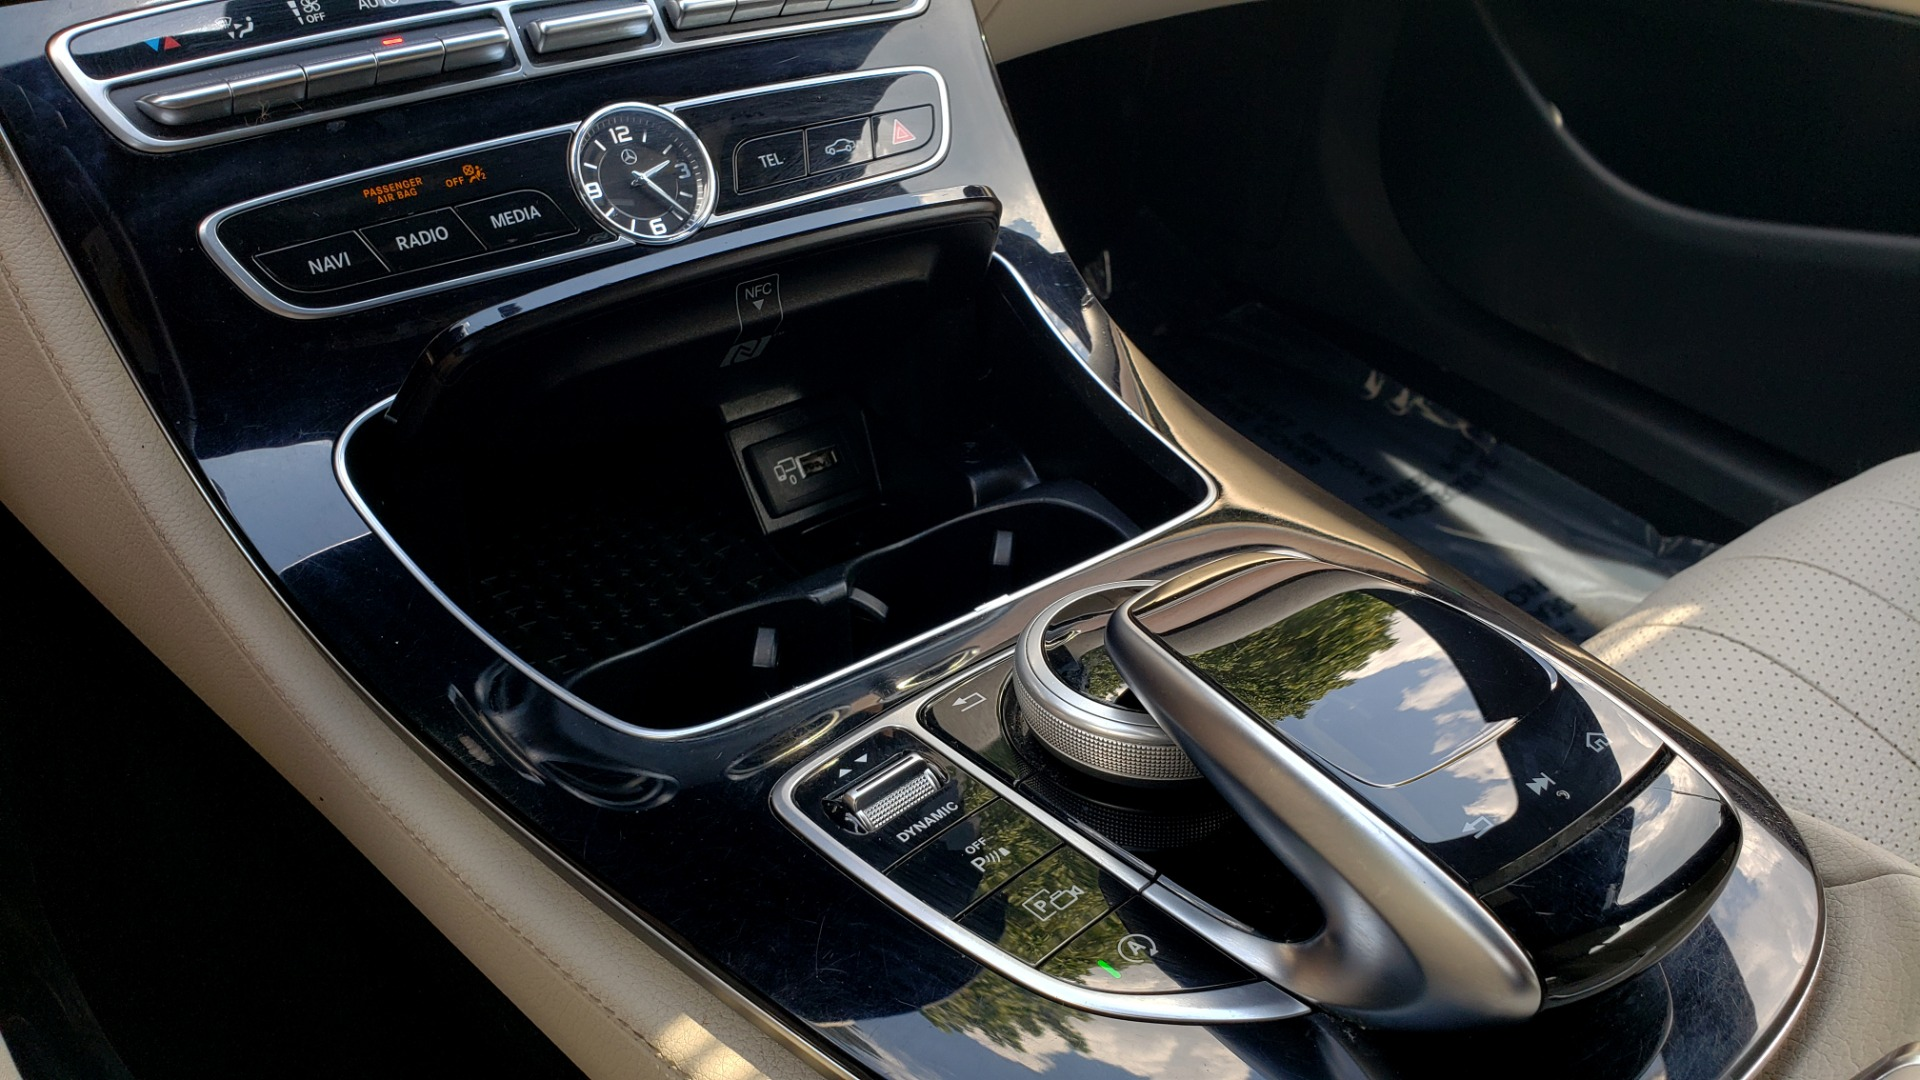 Used 2017 Mercedes-Benz E-CLASS E 300 PREMIUM / SPORT / NAV / SUNROOF / HTD STS / BSM / REARVIEW for sale $27,995 at Formula Imports in Charlotte NC 28227 44